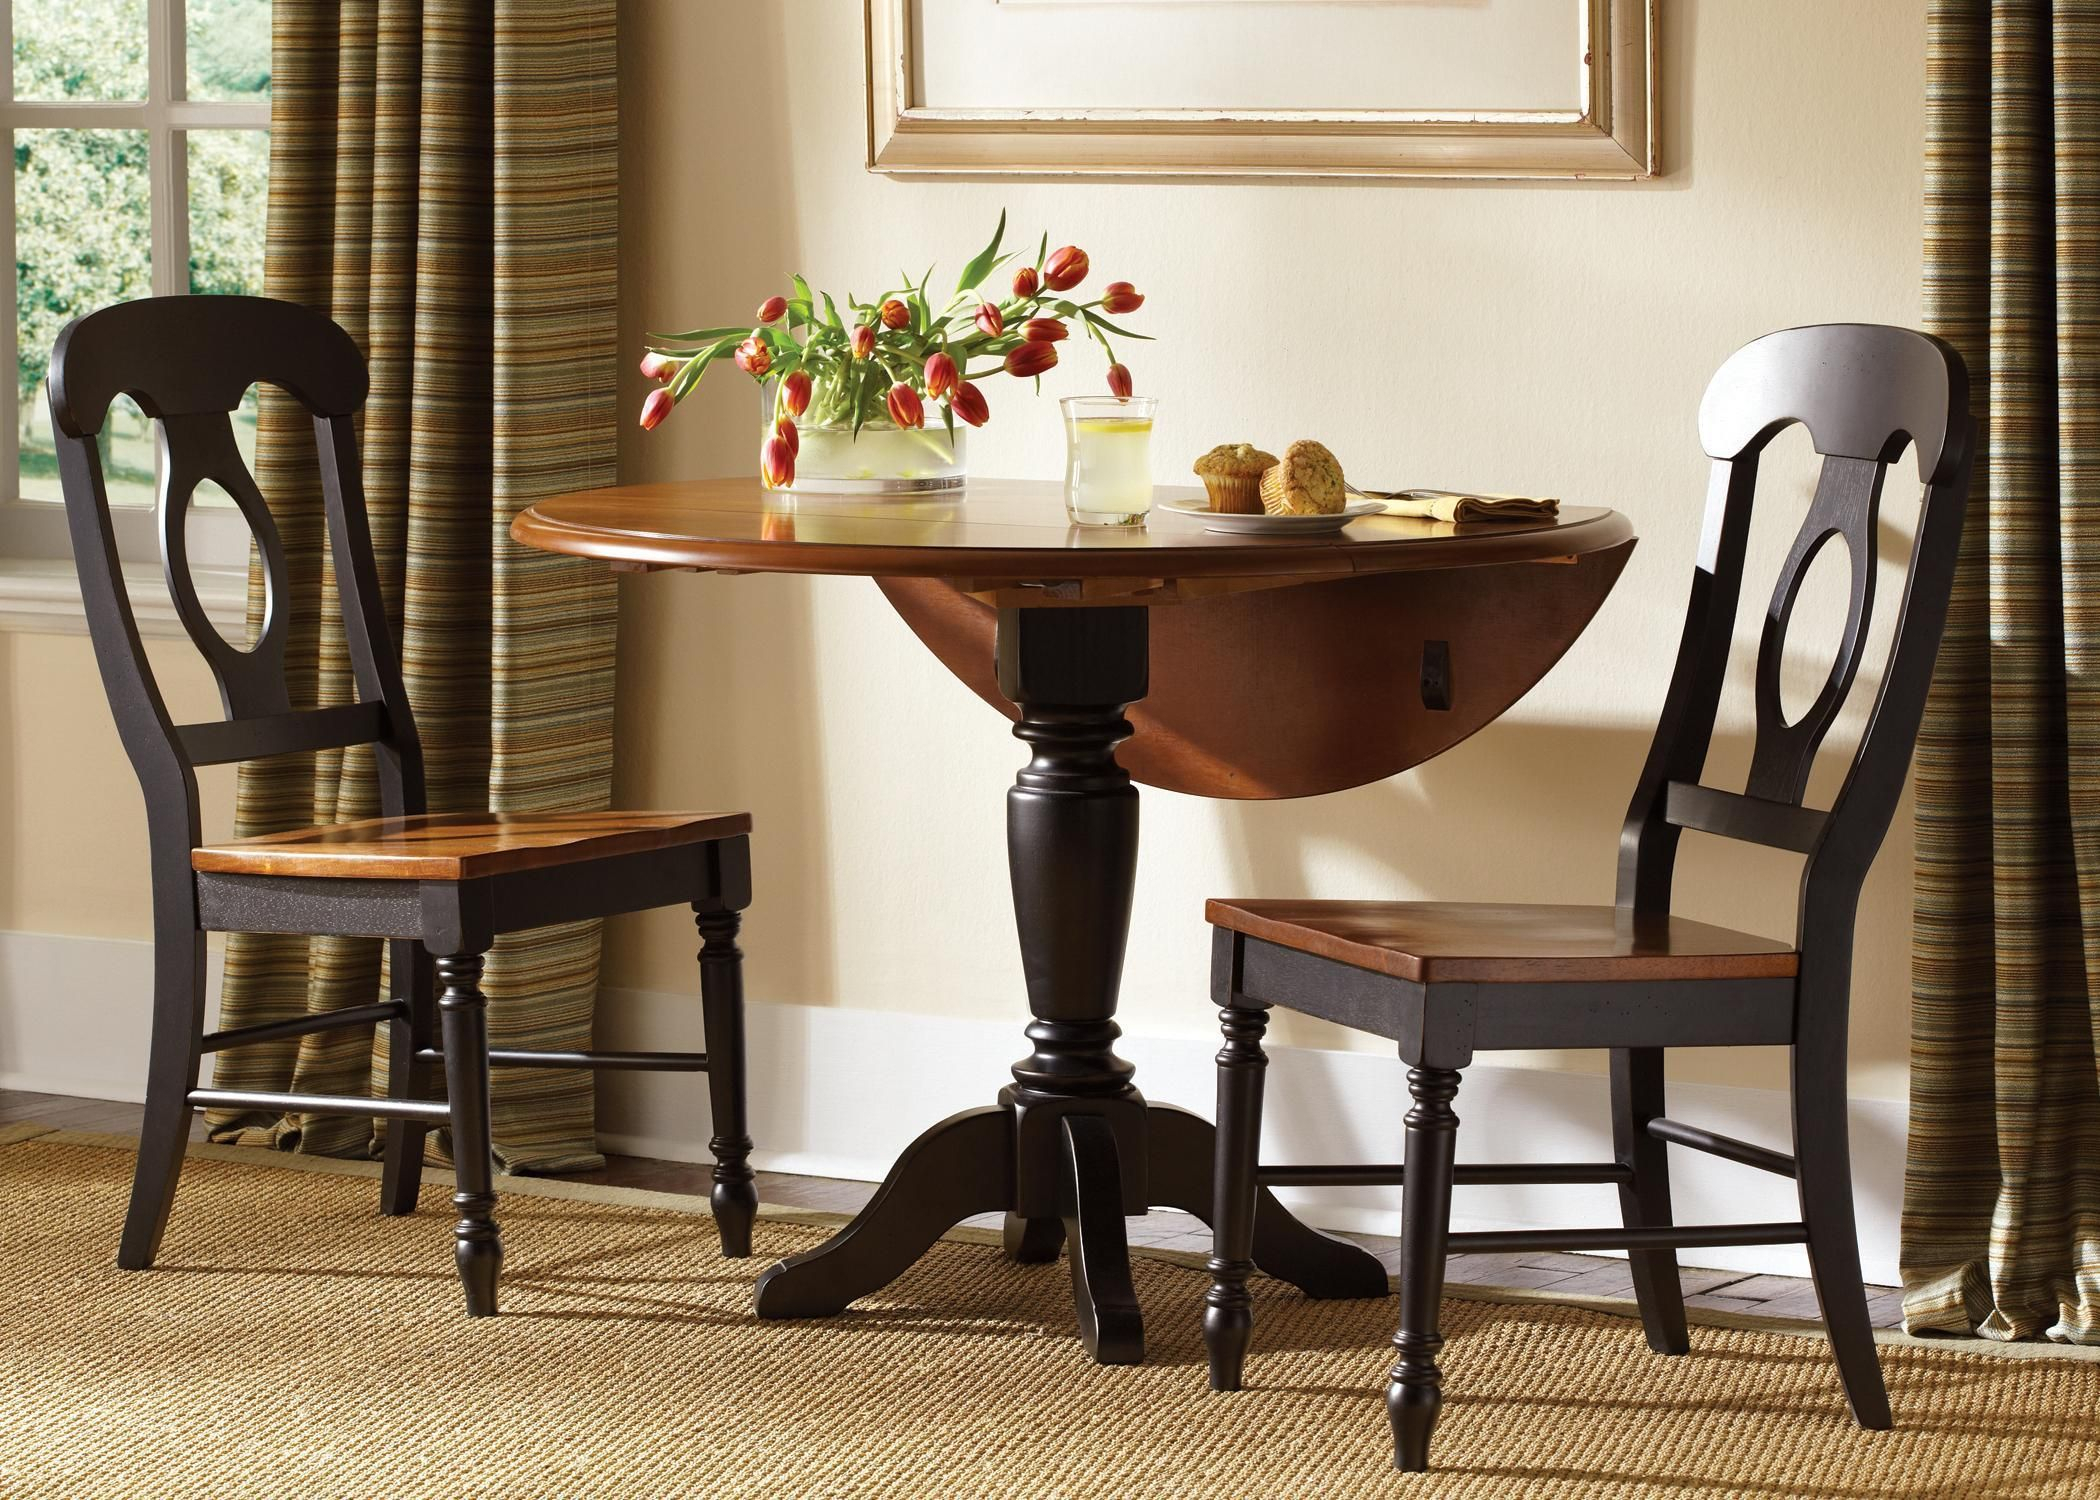 Low Country Black Drop Leaf Pedestal Table & 2 Side Chairs Intended For Recent Salvaged Black Shayne Drop Leaf Kitchen Tables (View 15 of 25)